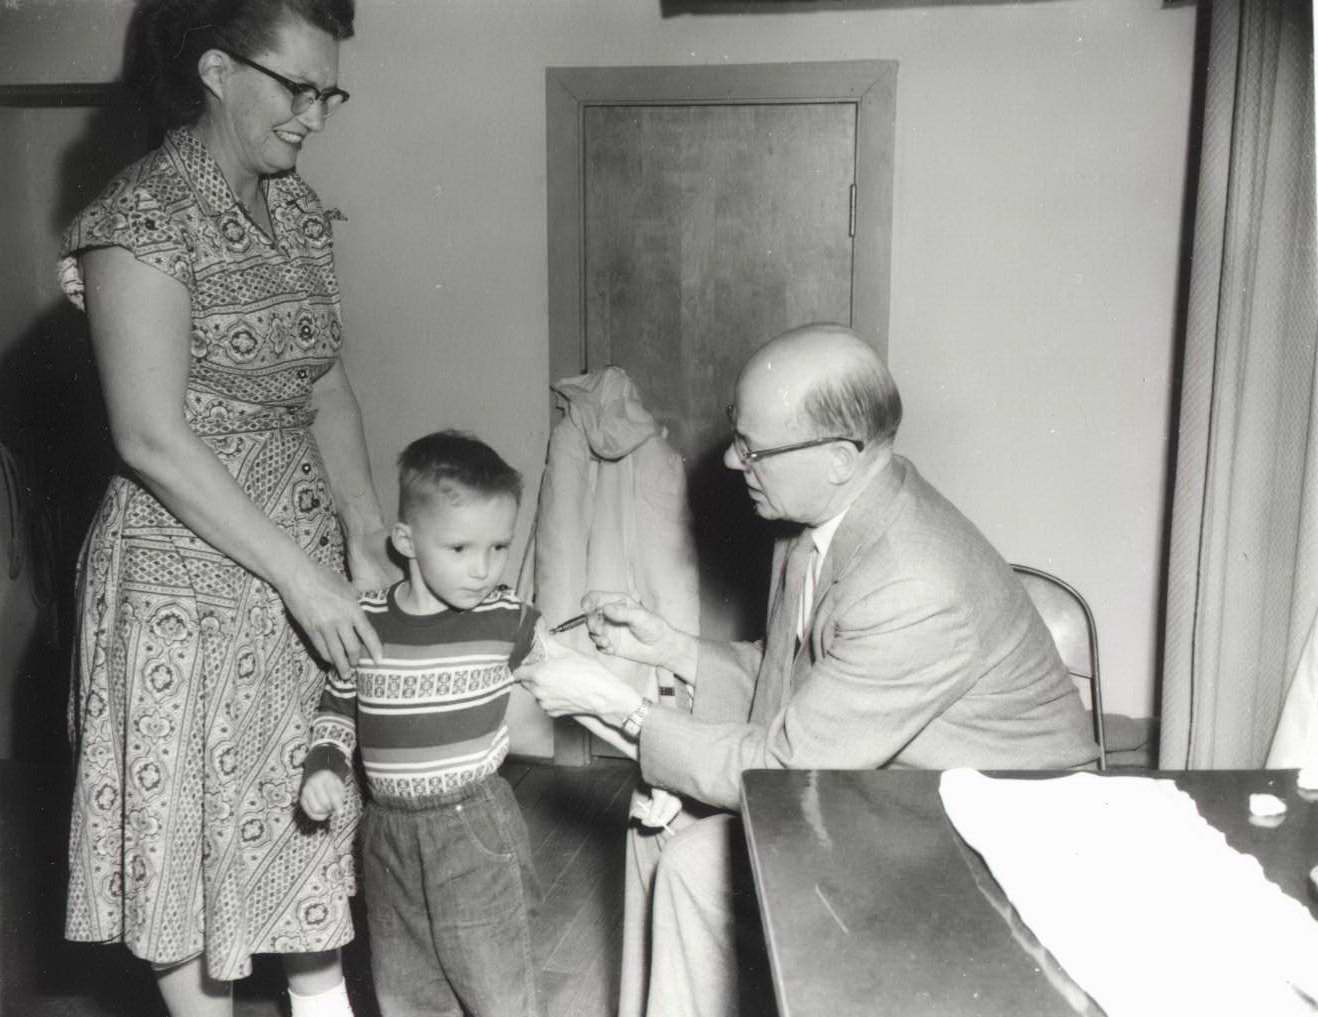 High Plains Museum | PM299MISC Dr. Vermillion administering a polio vaccine.